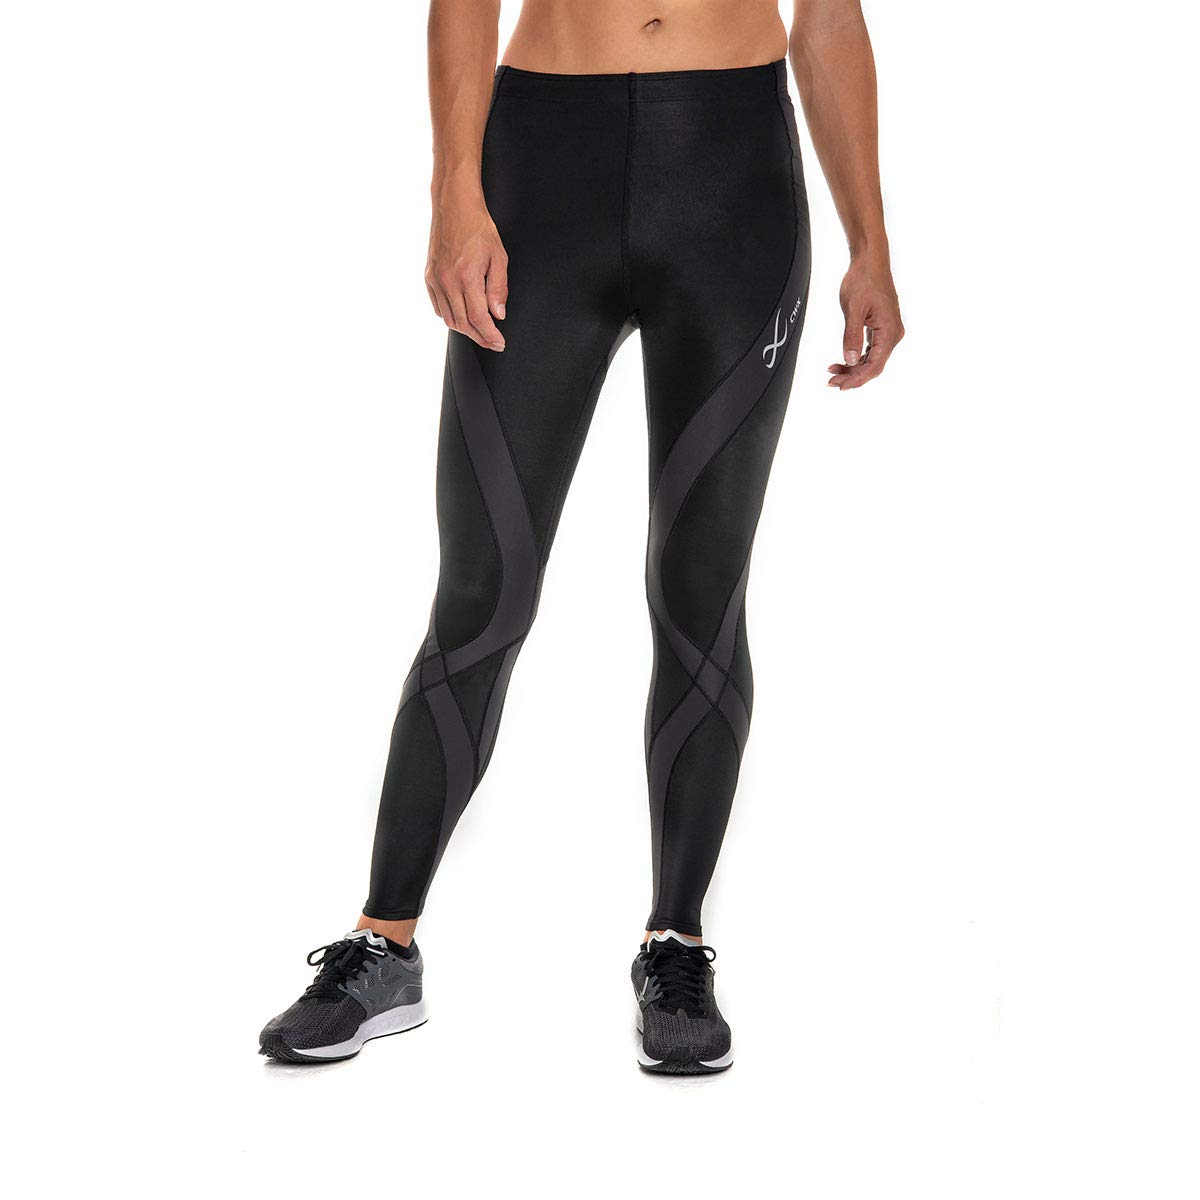 CW-X Women's Pro Running Tights,Black,Large by CW-X (Image #1)